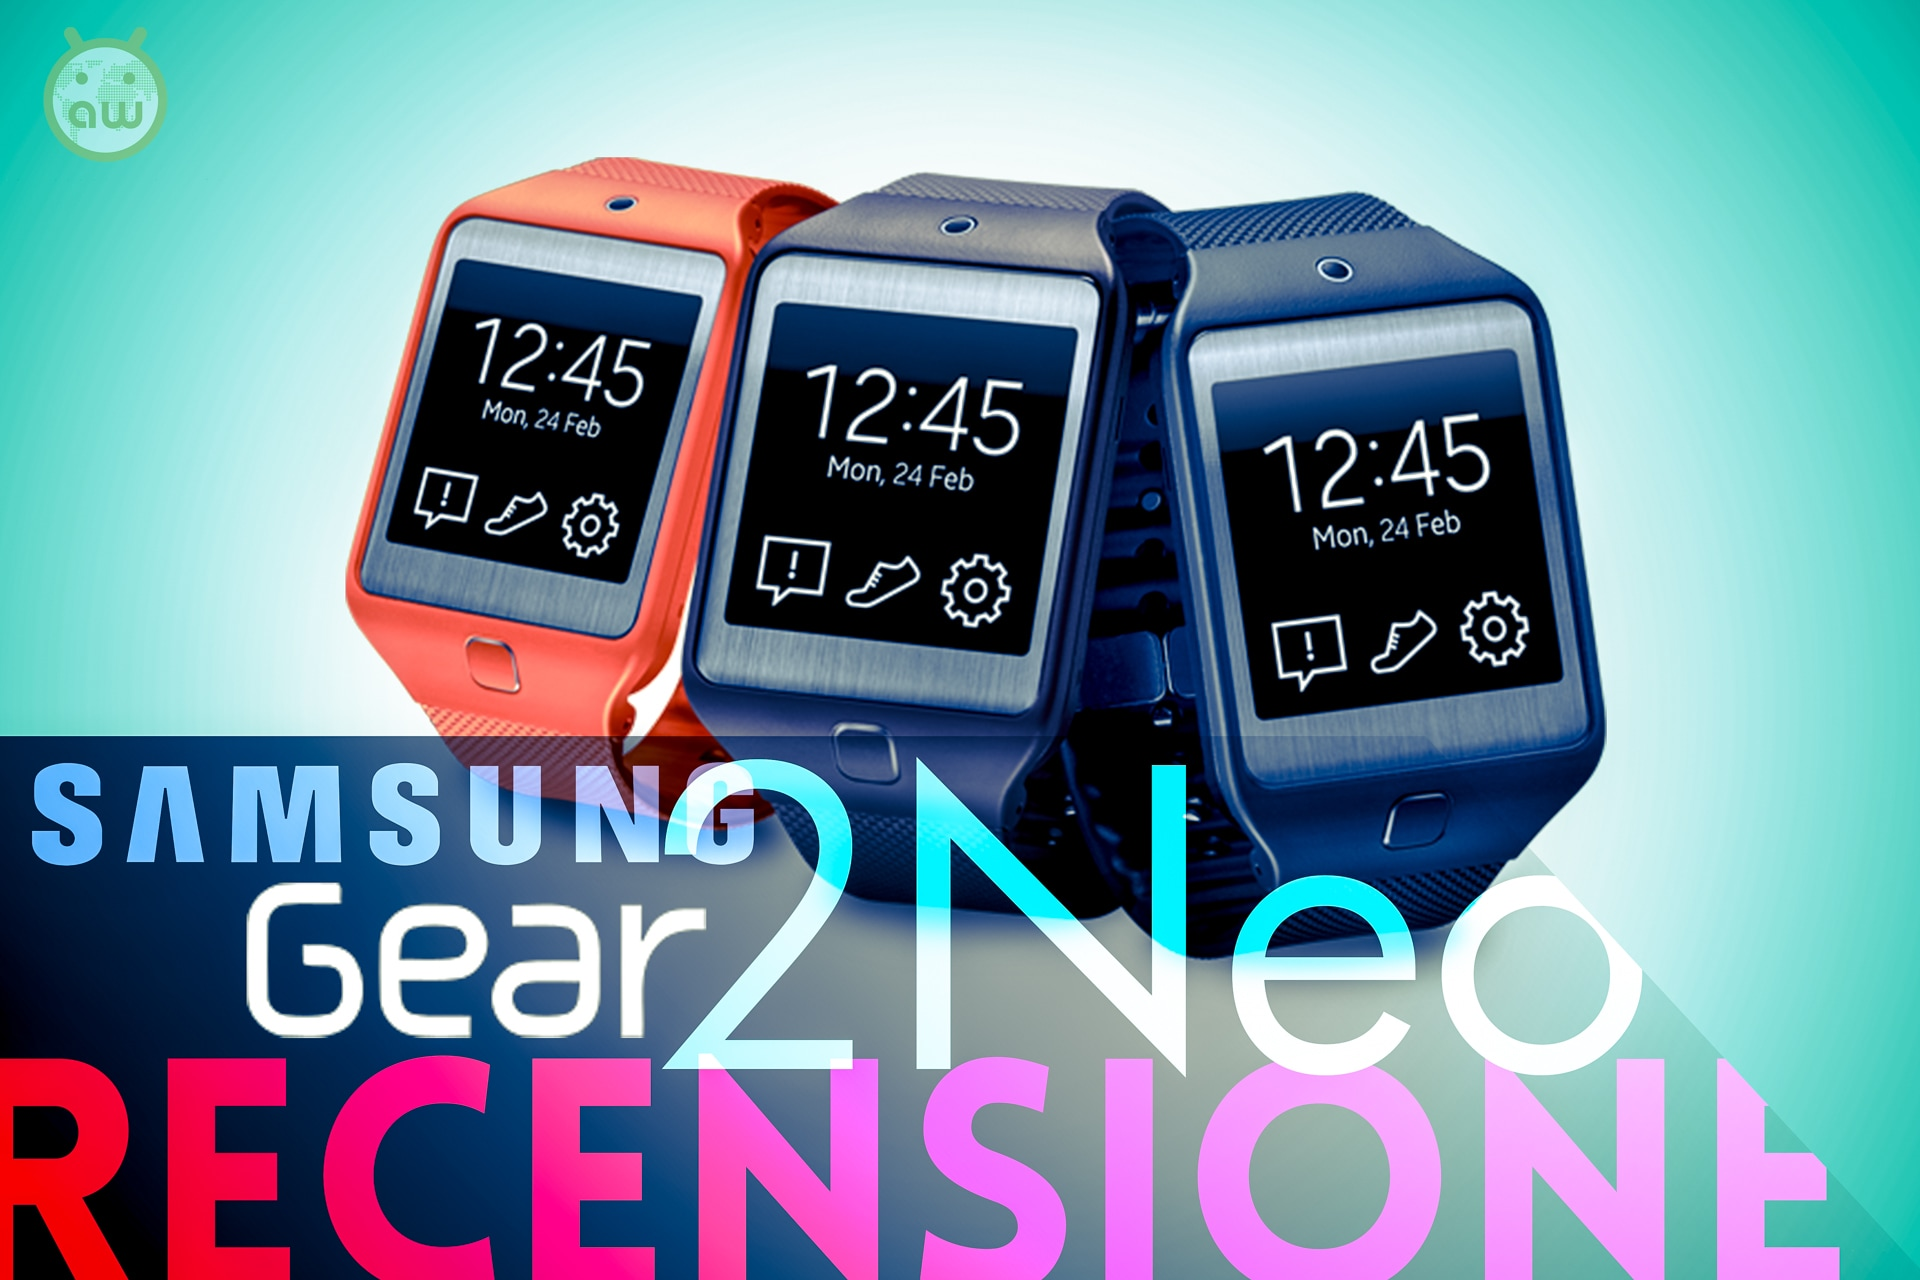 recensione samsung gear 2 neo androidworld. Black Bedroom Furniture Sets. Home Design Ideas